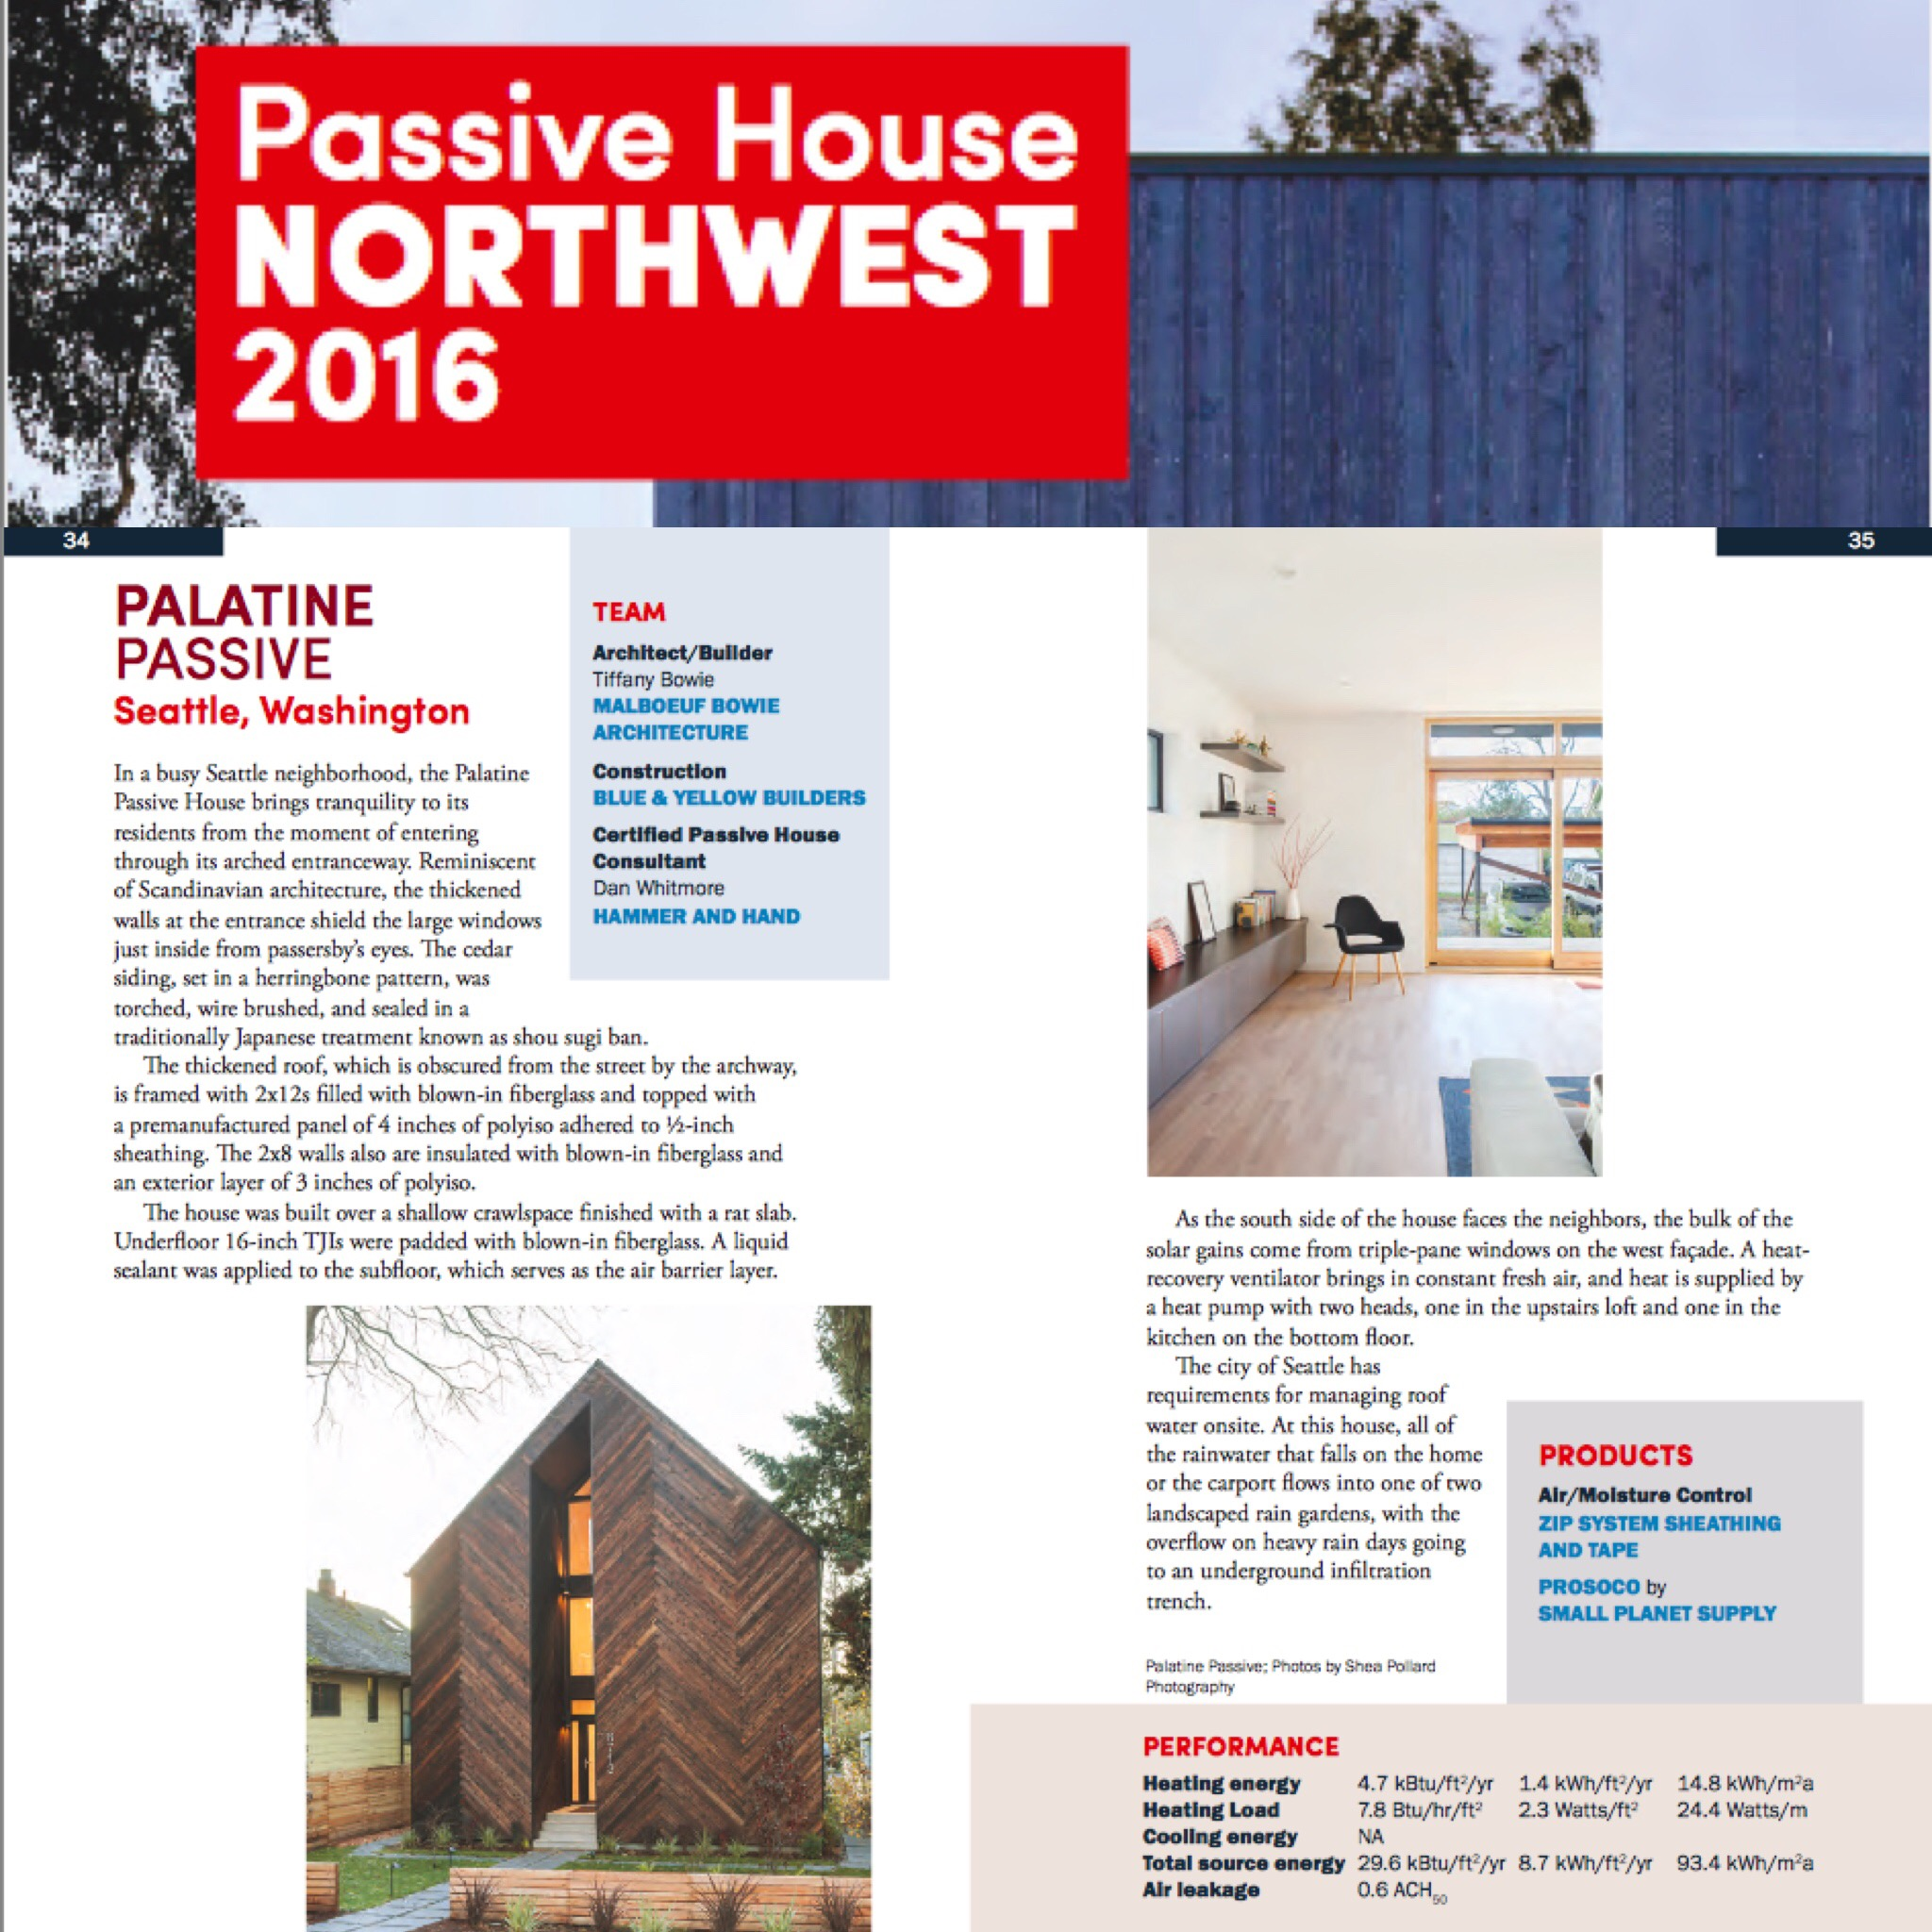 malboeuf bowie passive house